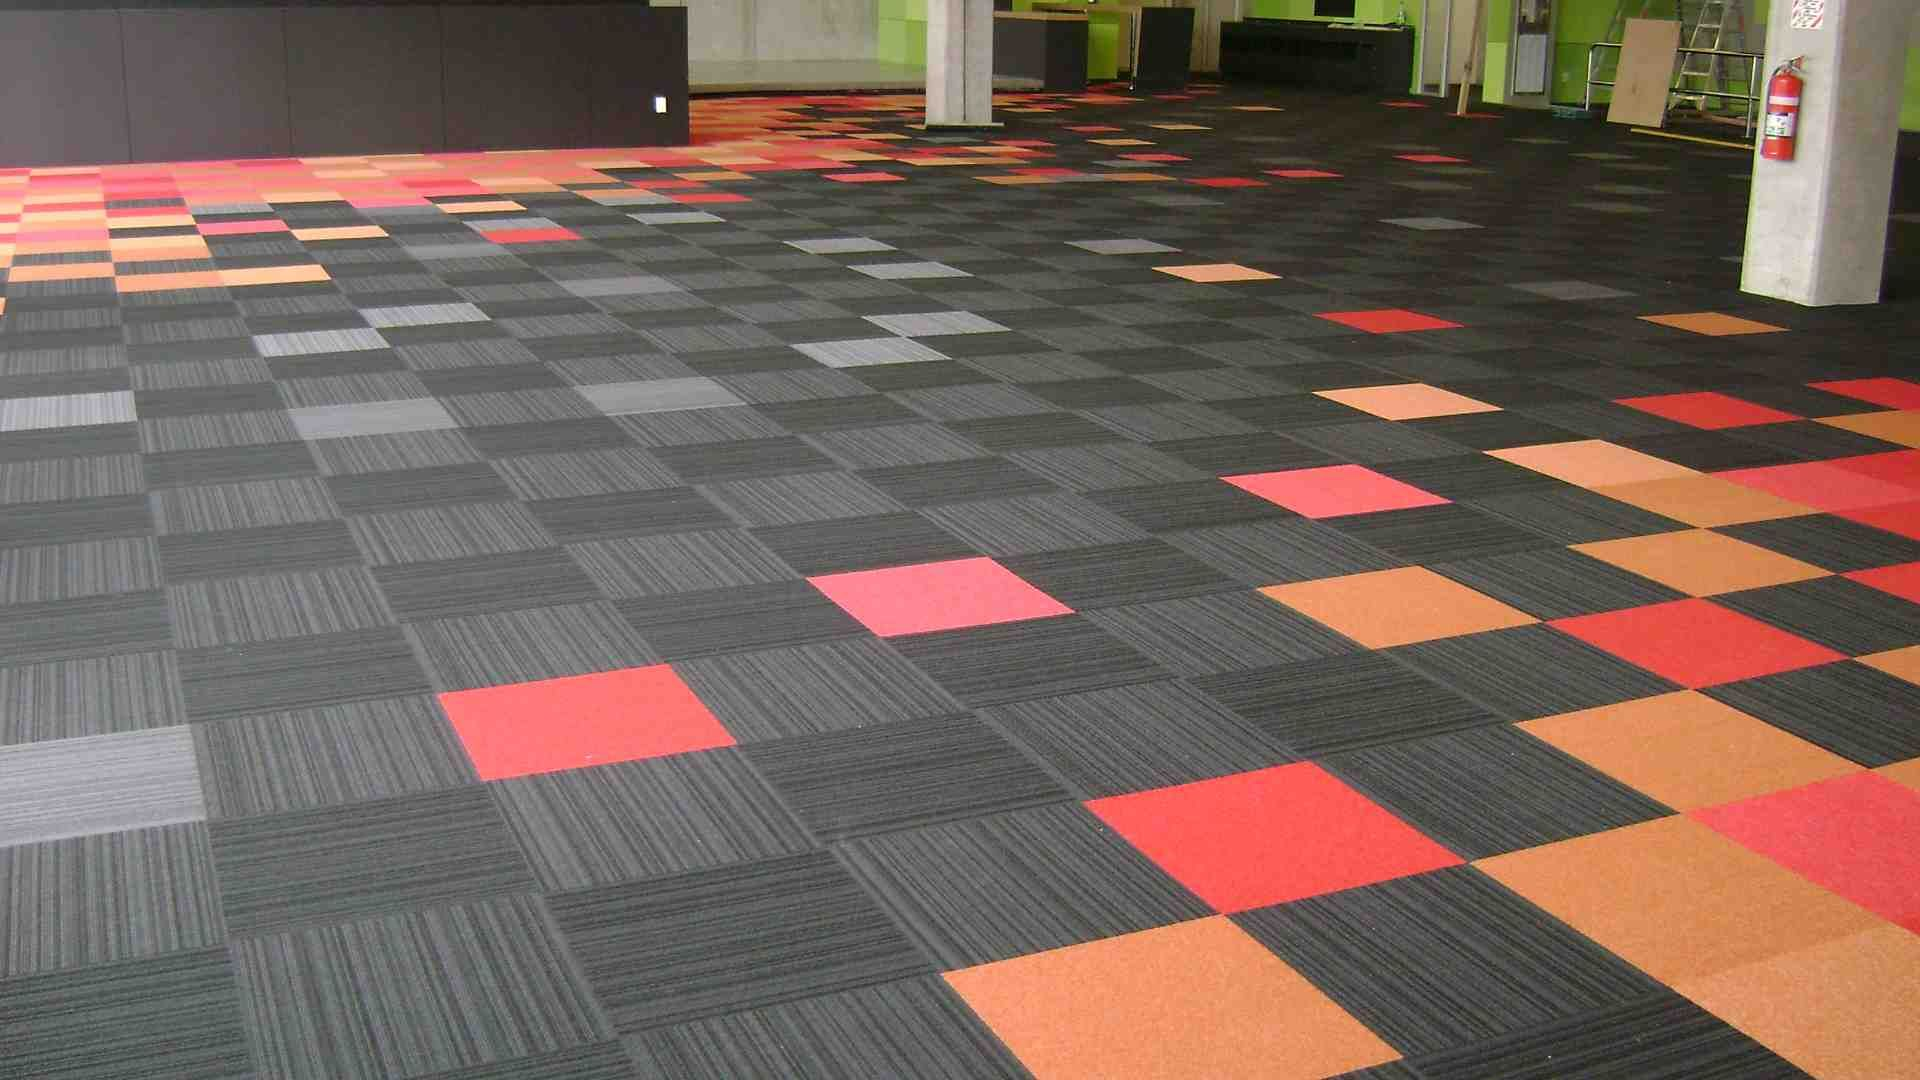 Carpet Tile Design Ideas carpet tiles 17 Best Images About Carpet Tiles On Pinterest Offices Patterns And Design